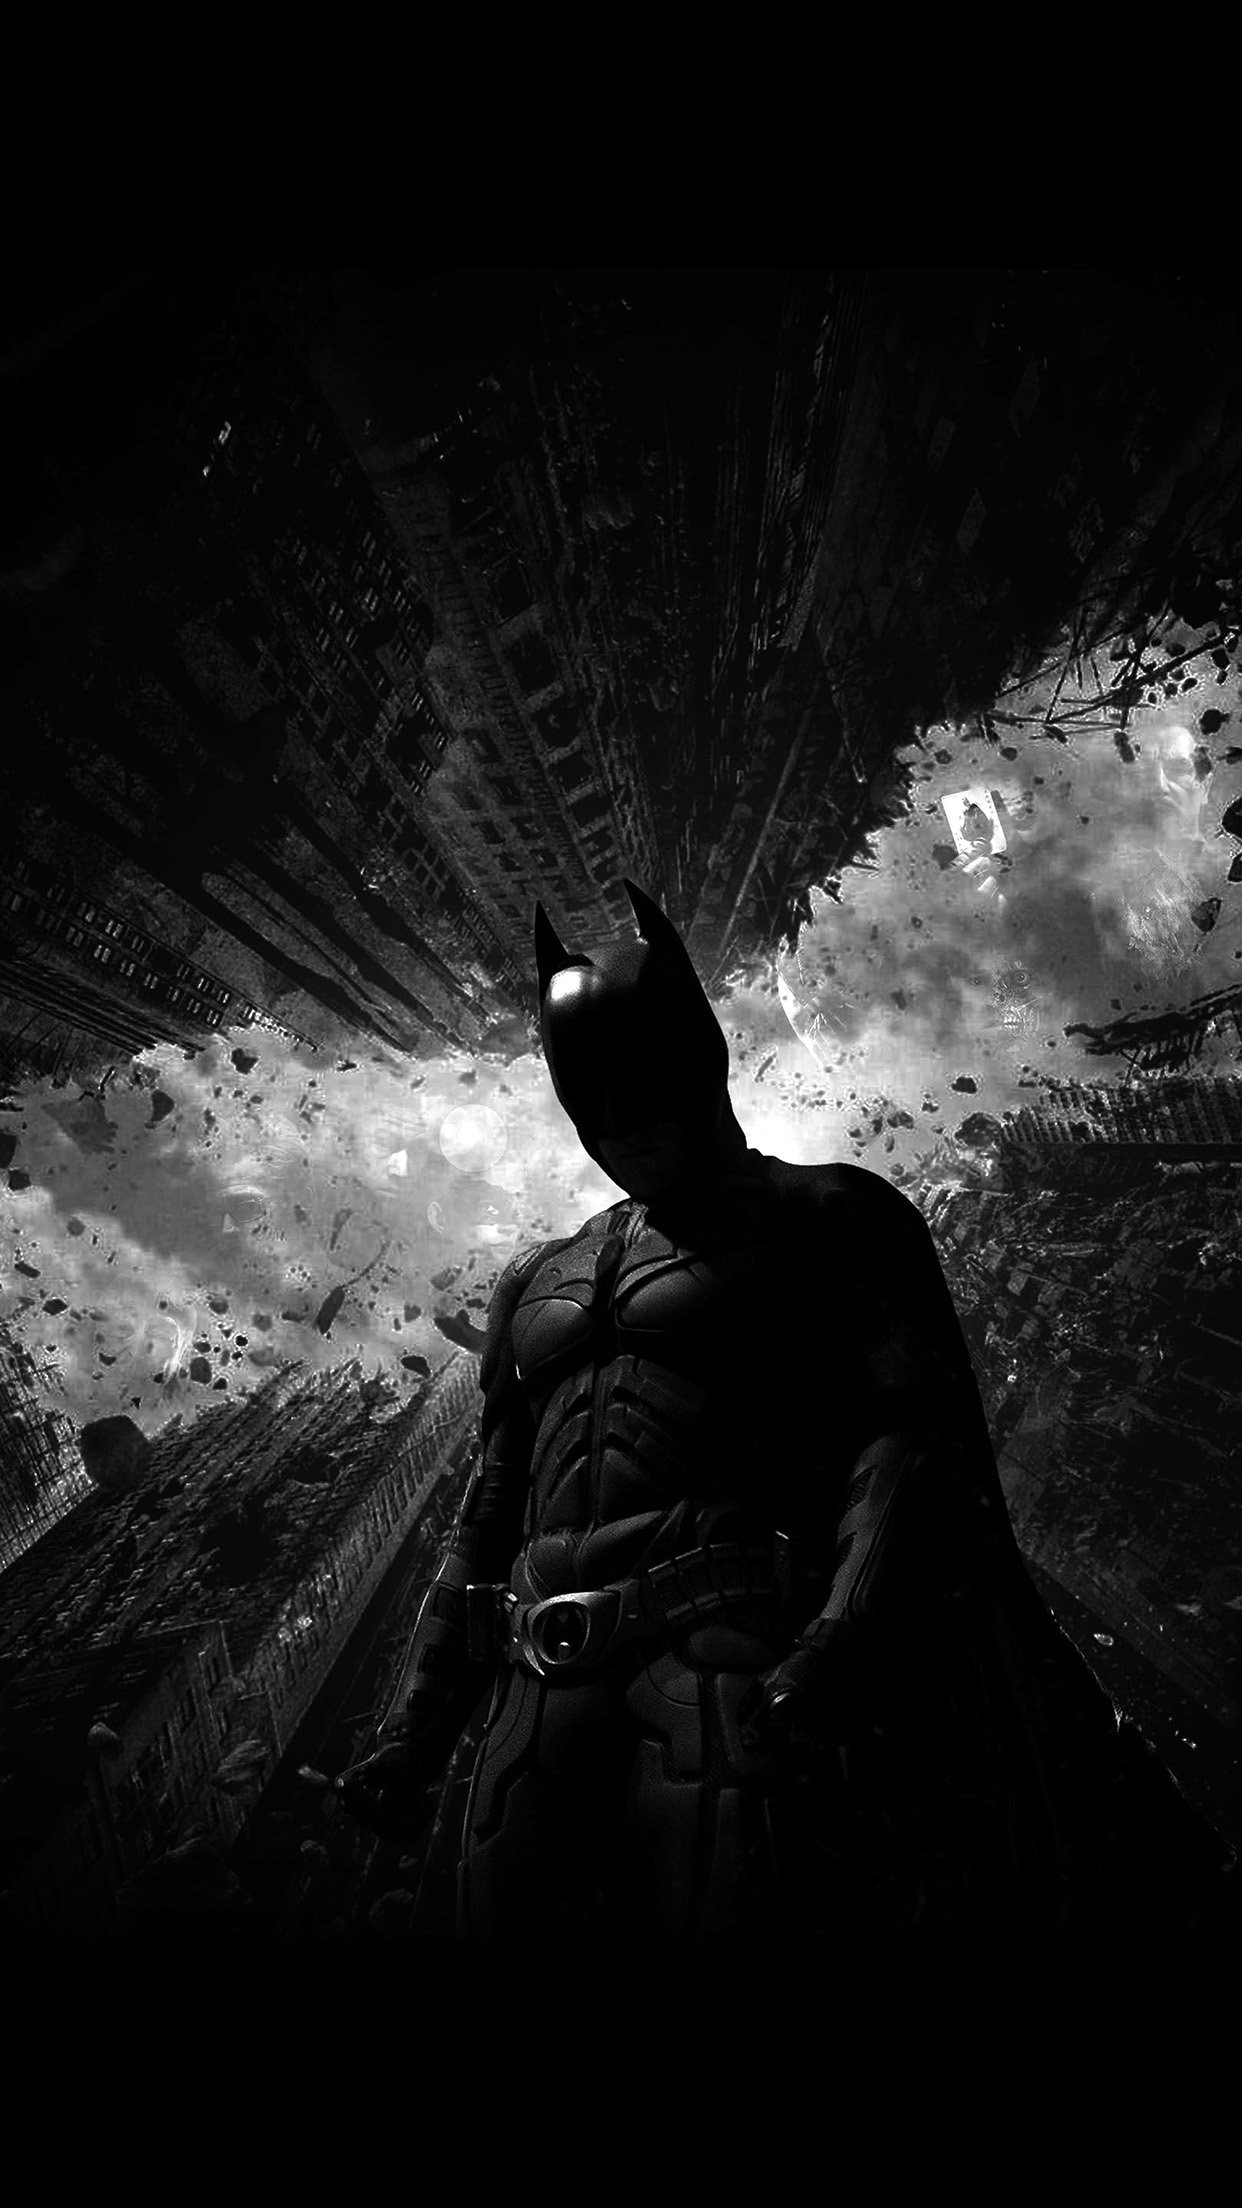 batman lock screen wallpaper 63 images